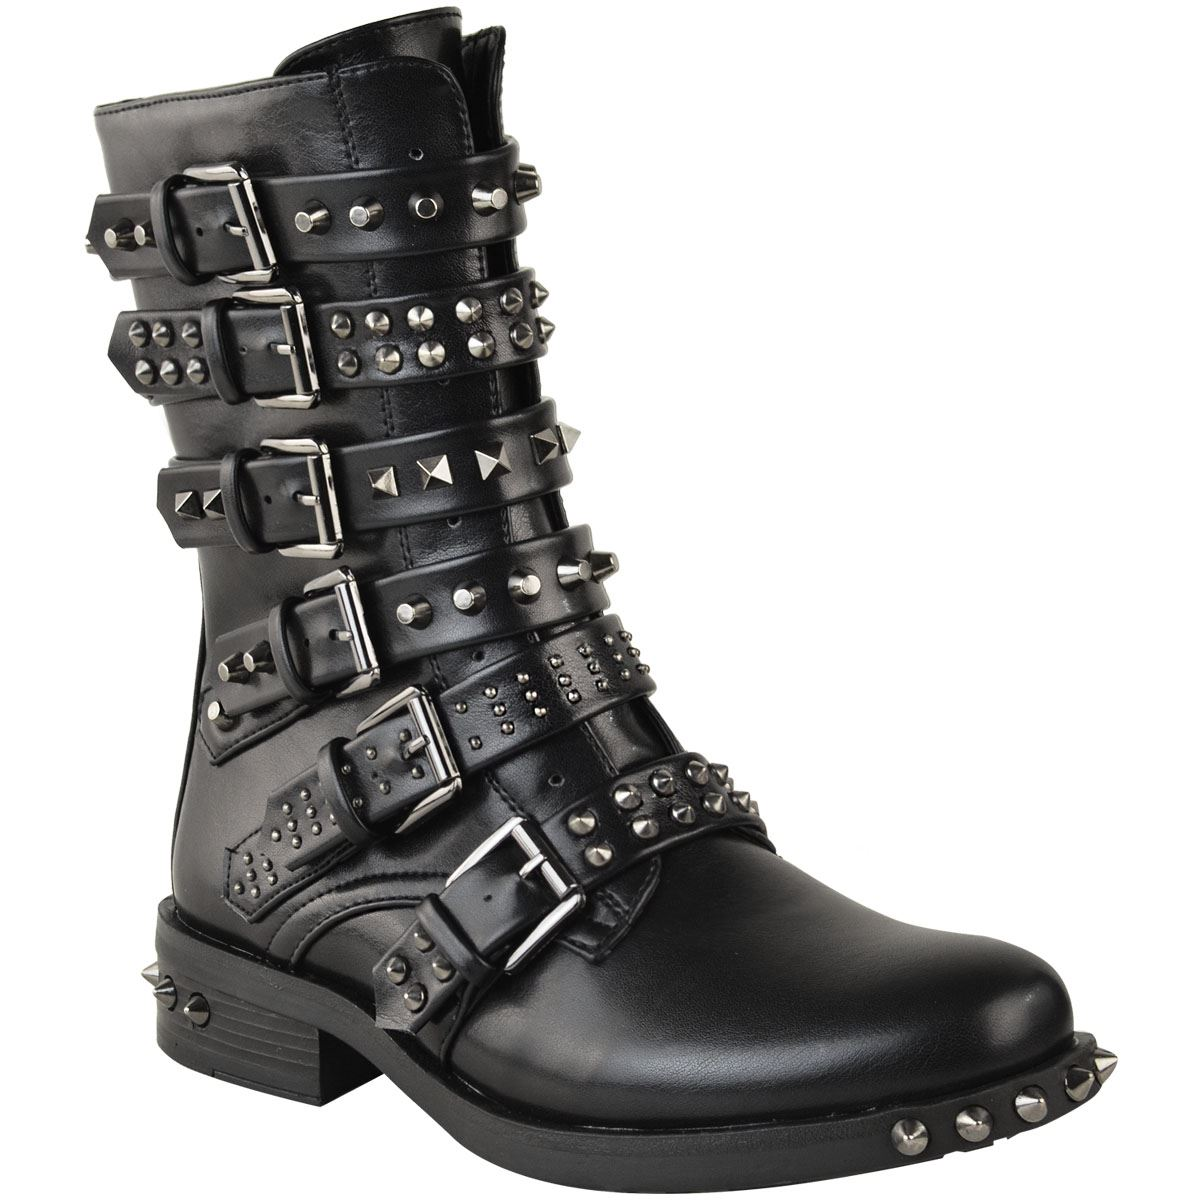 Bottines-femme-cloutees-avec-Bottines-Boucle-Western-Motard-Lanieres-Plates-Chaussures-Taille